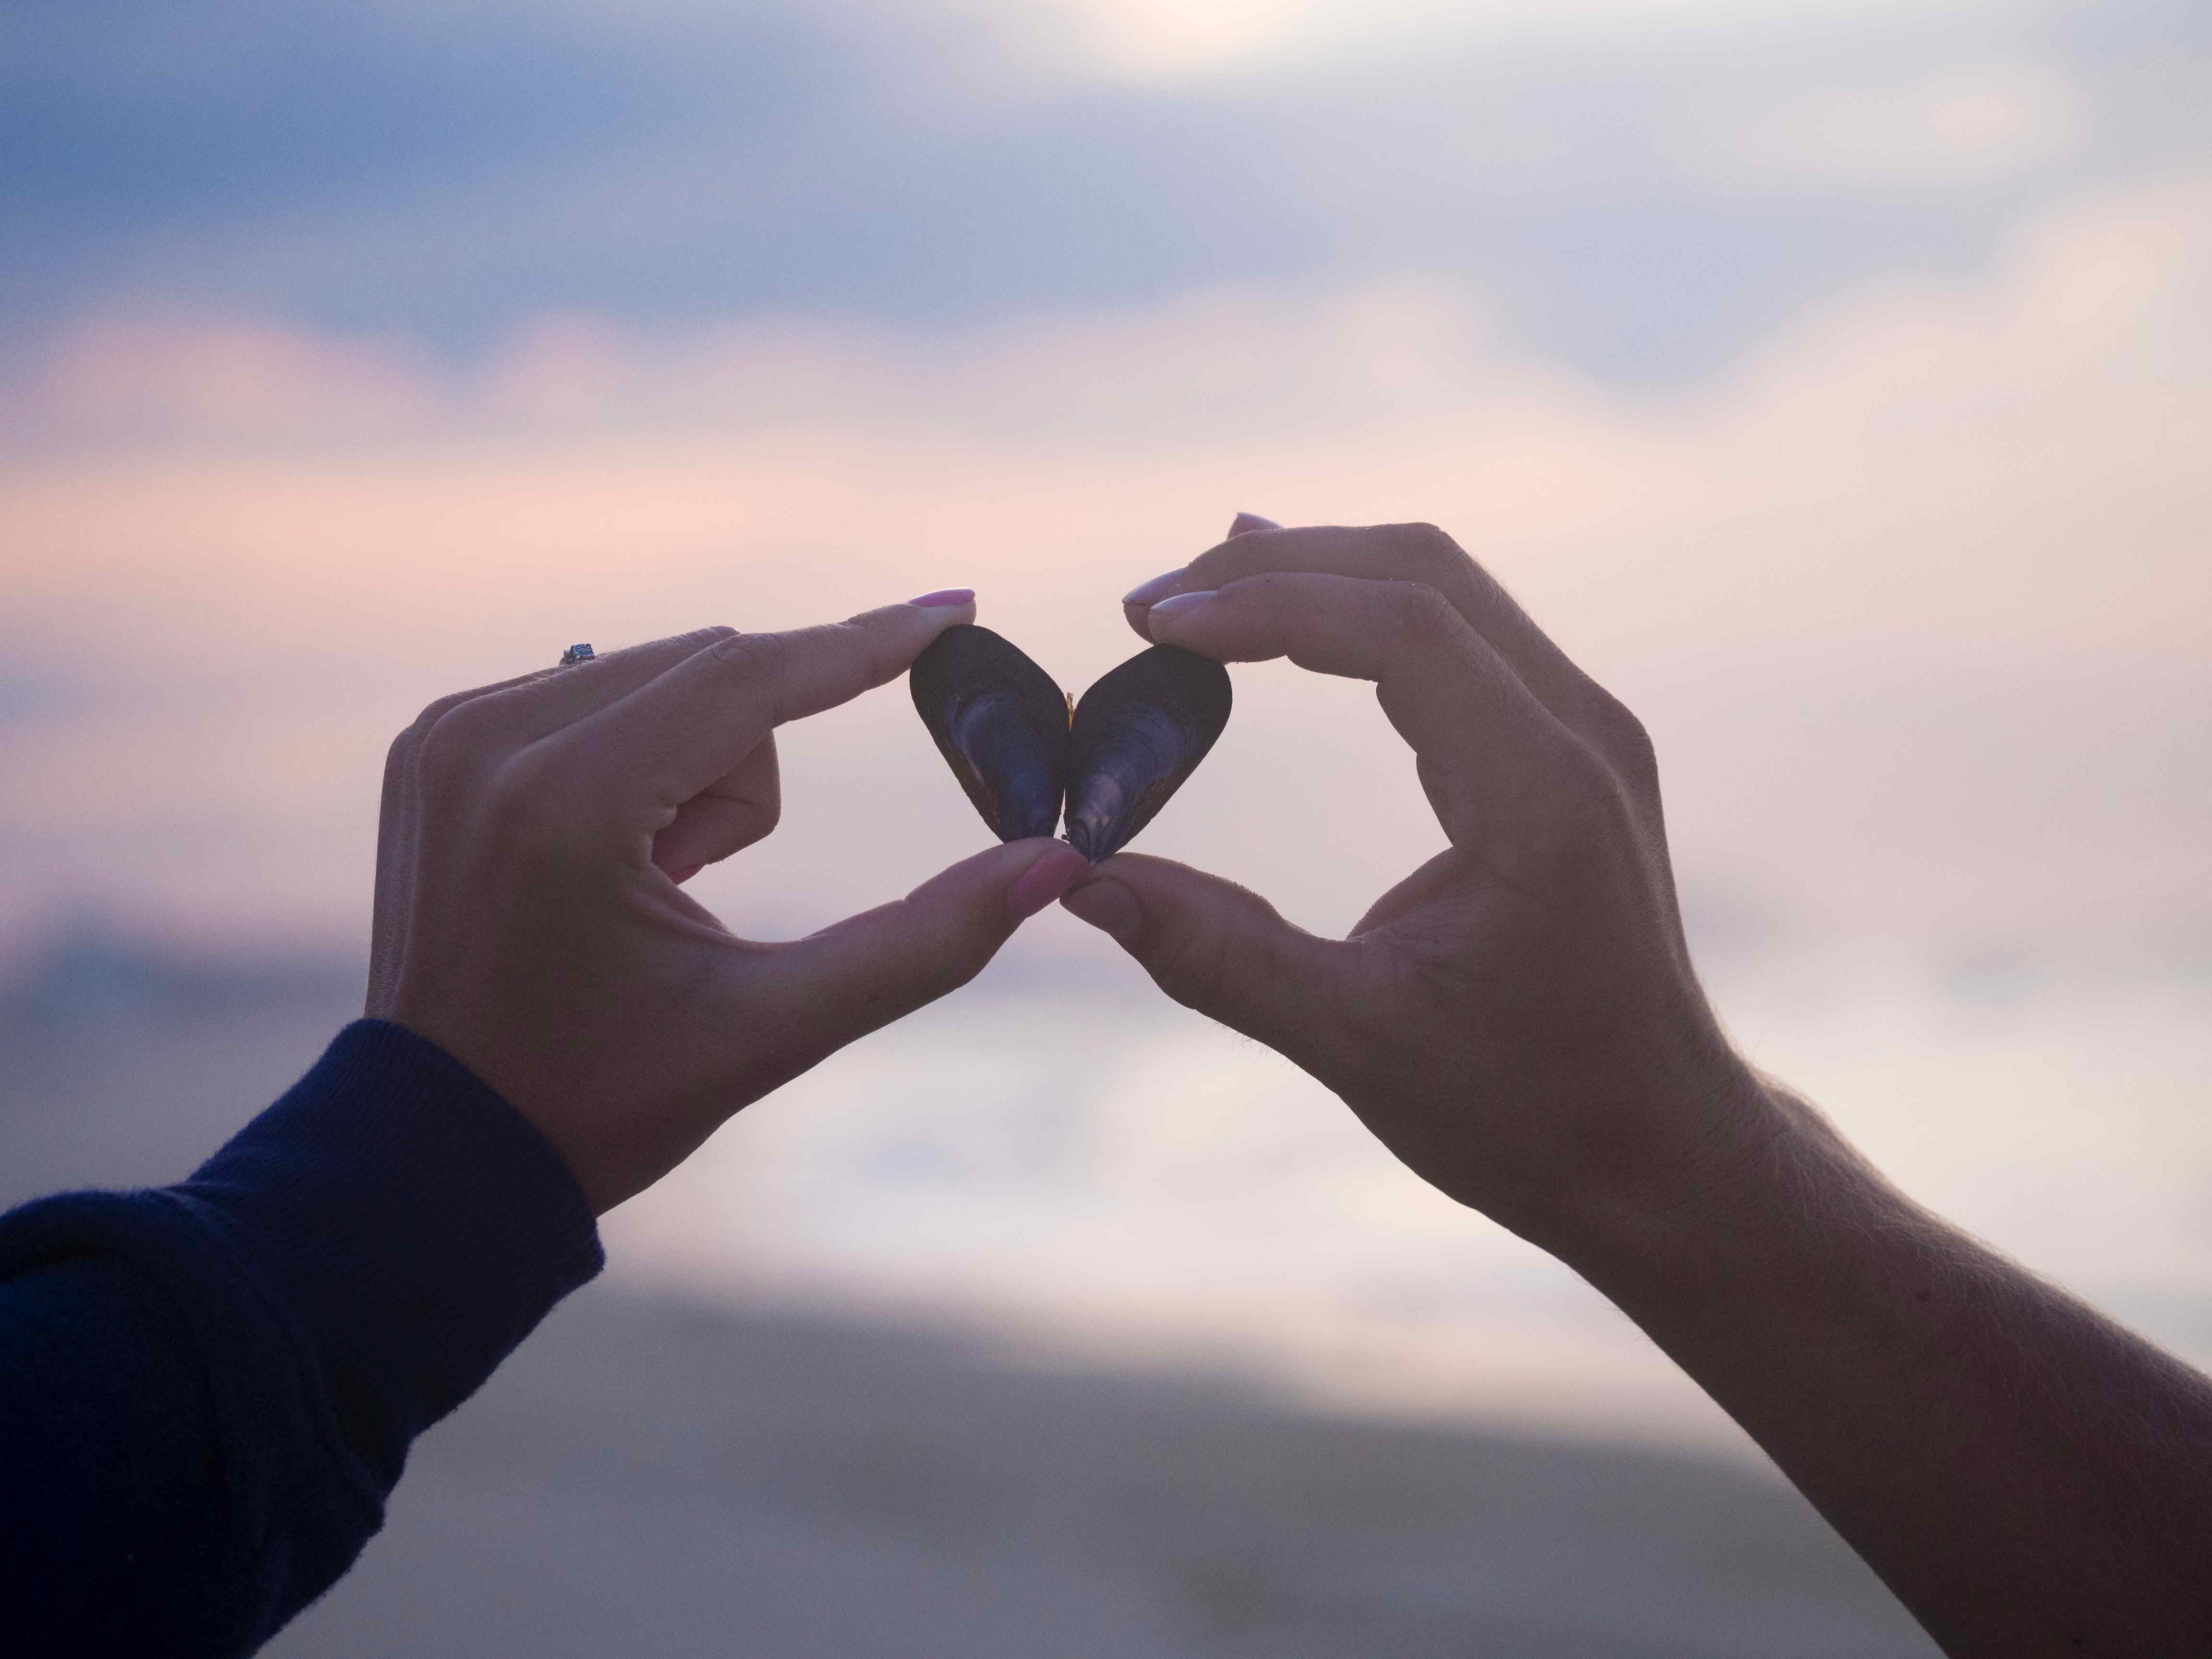 Two hands making a heart with a shell